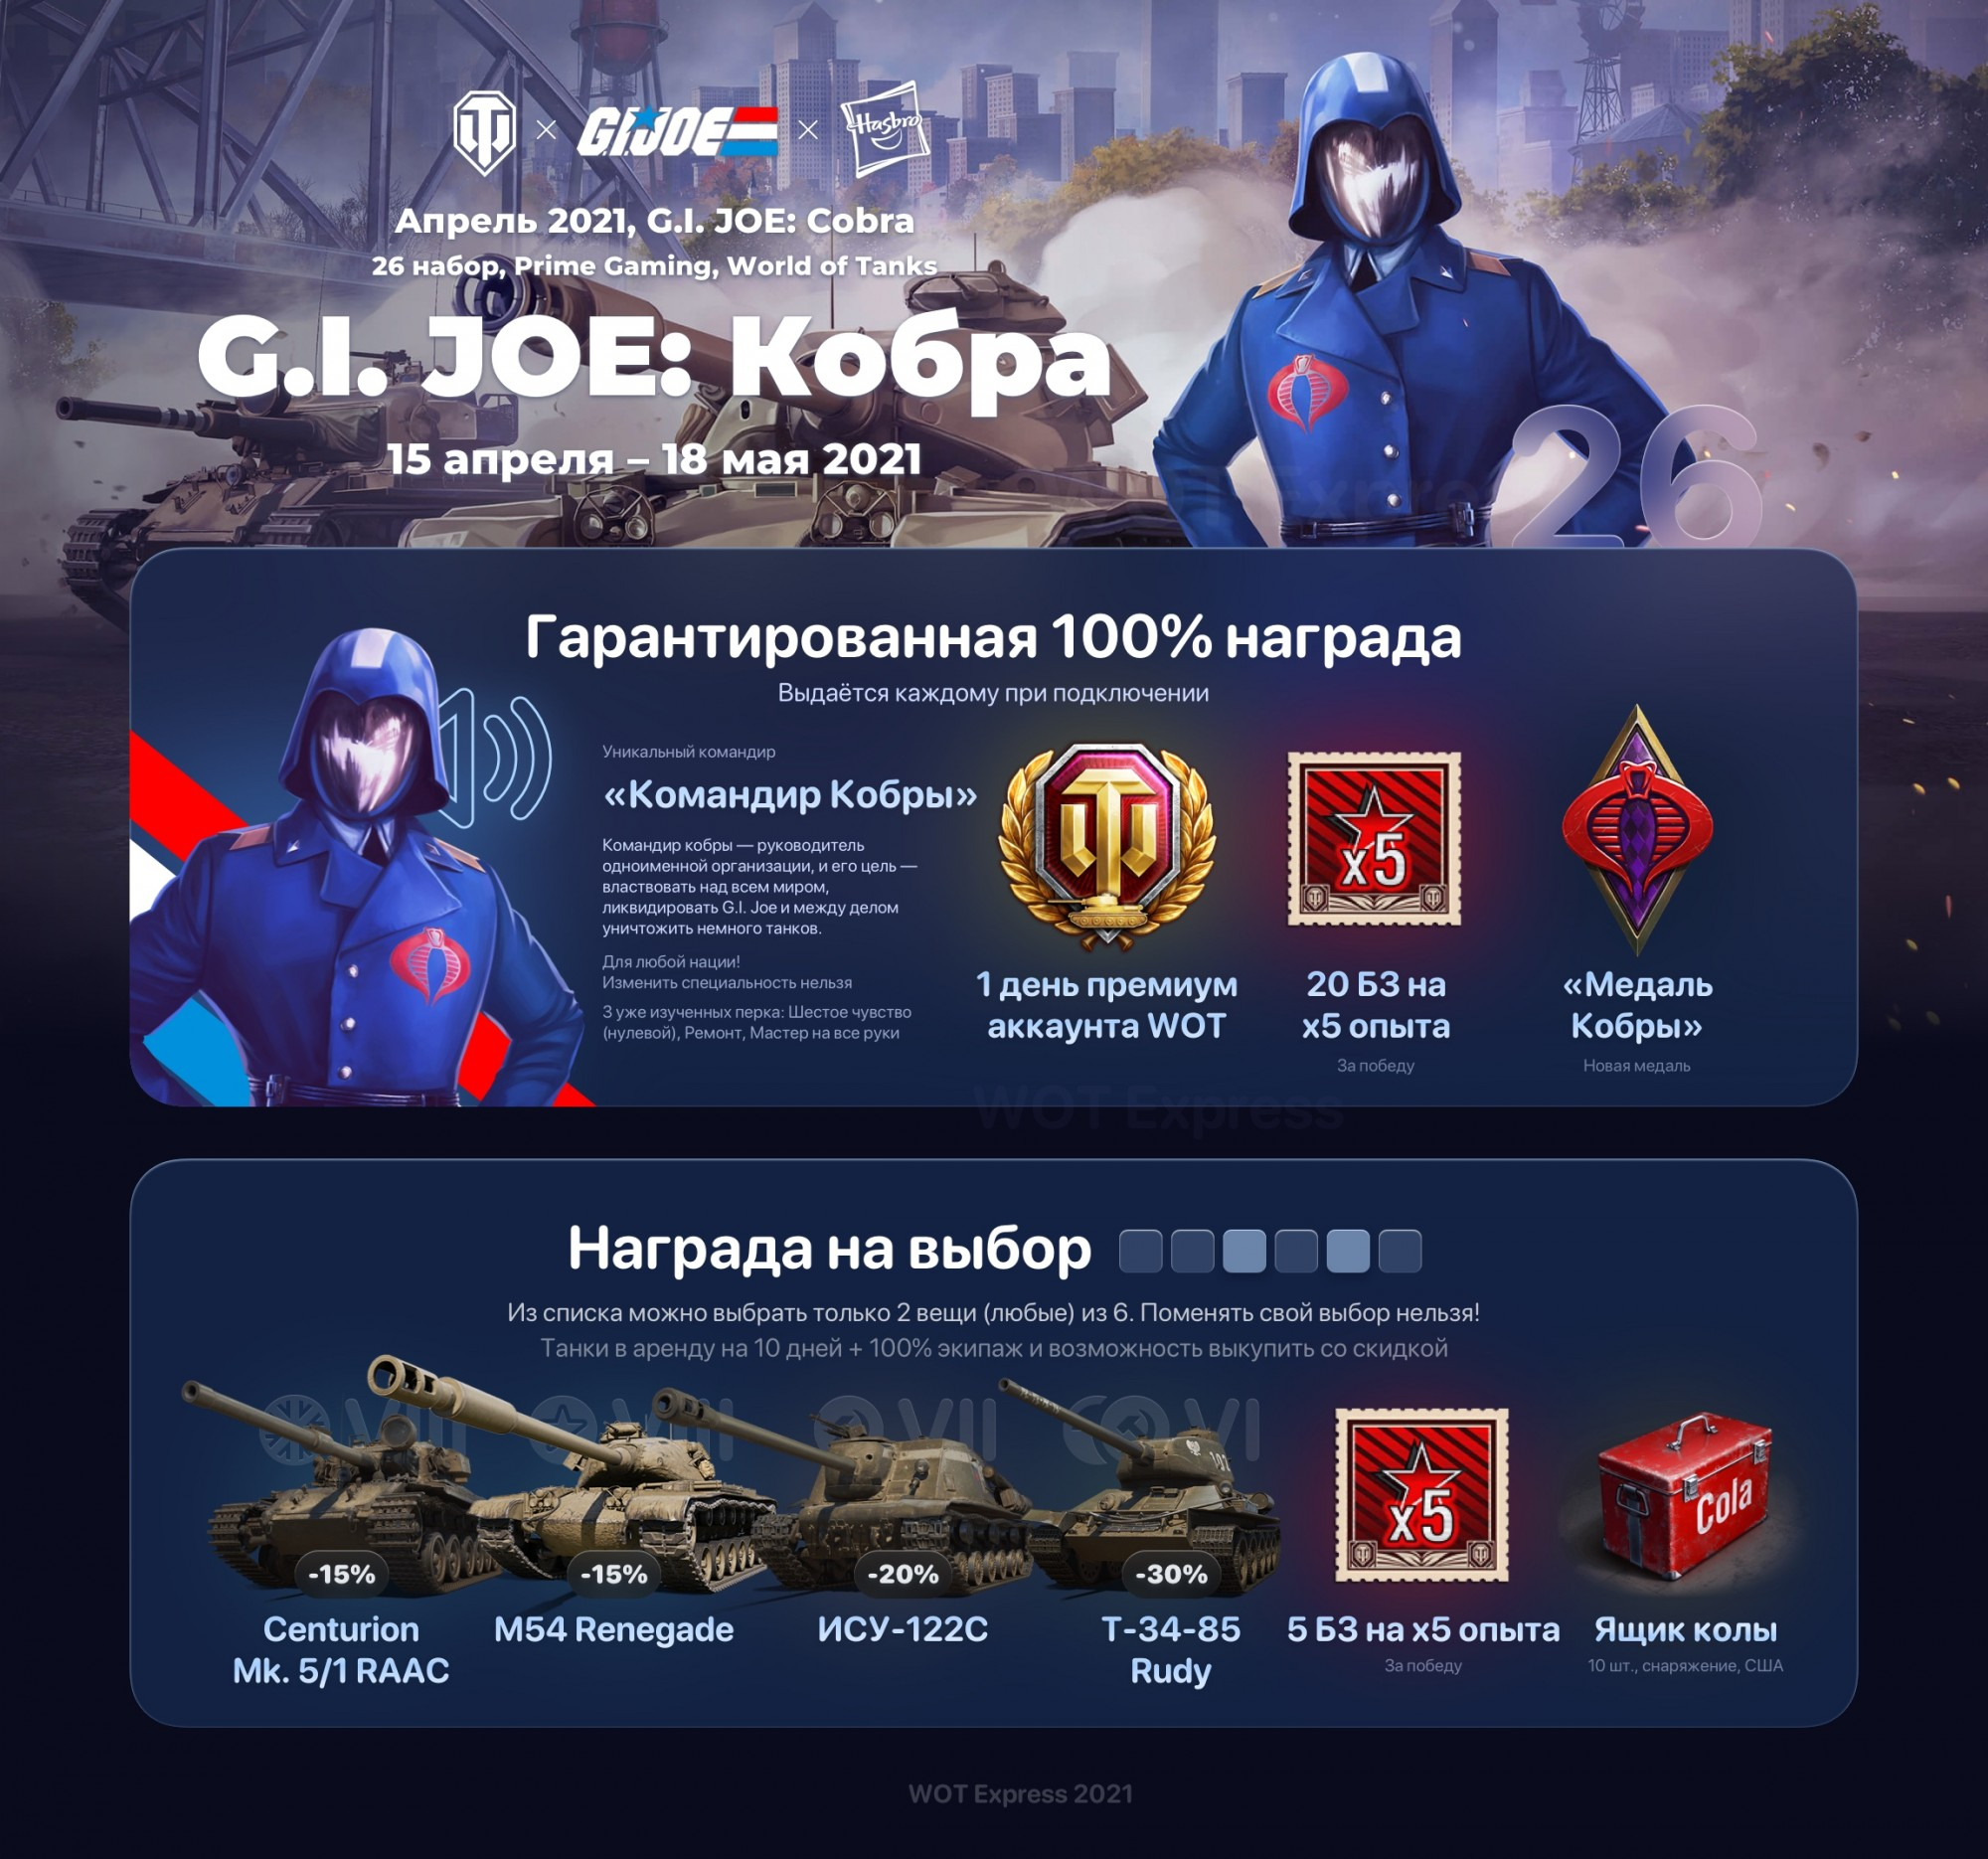 Prime Gaming «G.I. JOE: Кобра» + «G.I. JOE: Дьюк» + «Клюёт!» #1